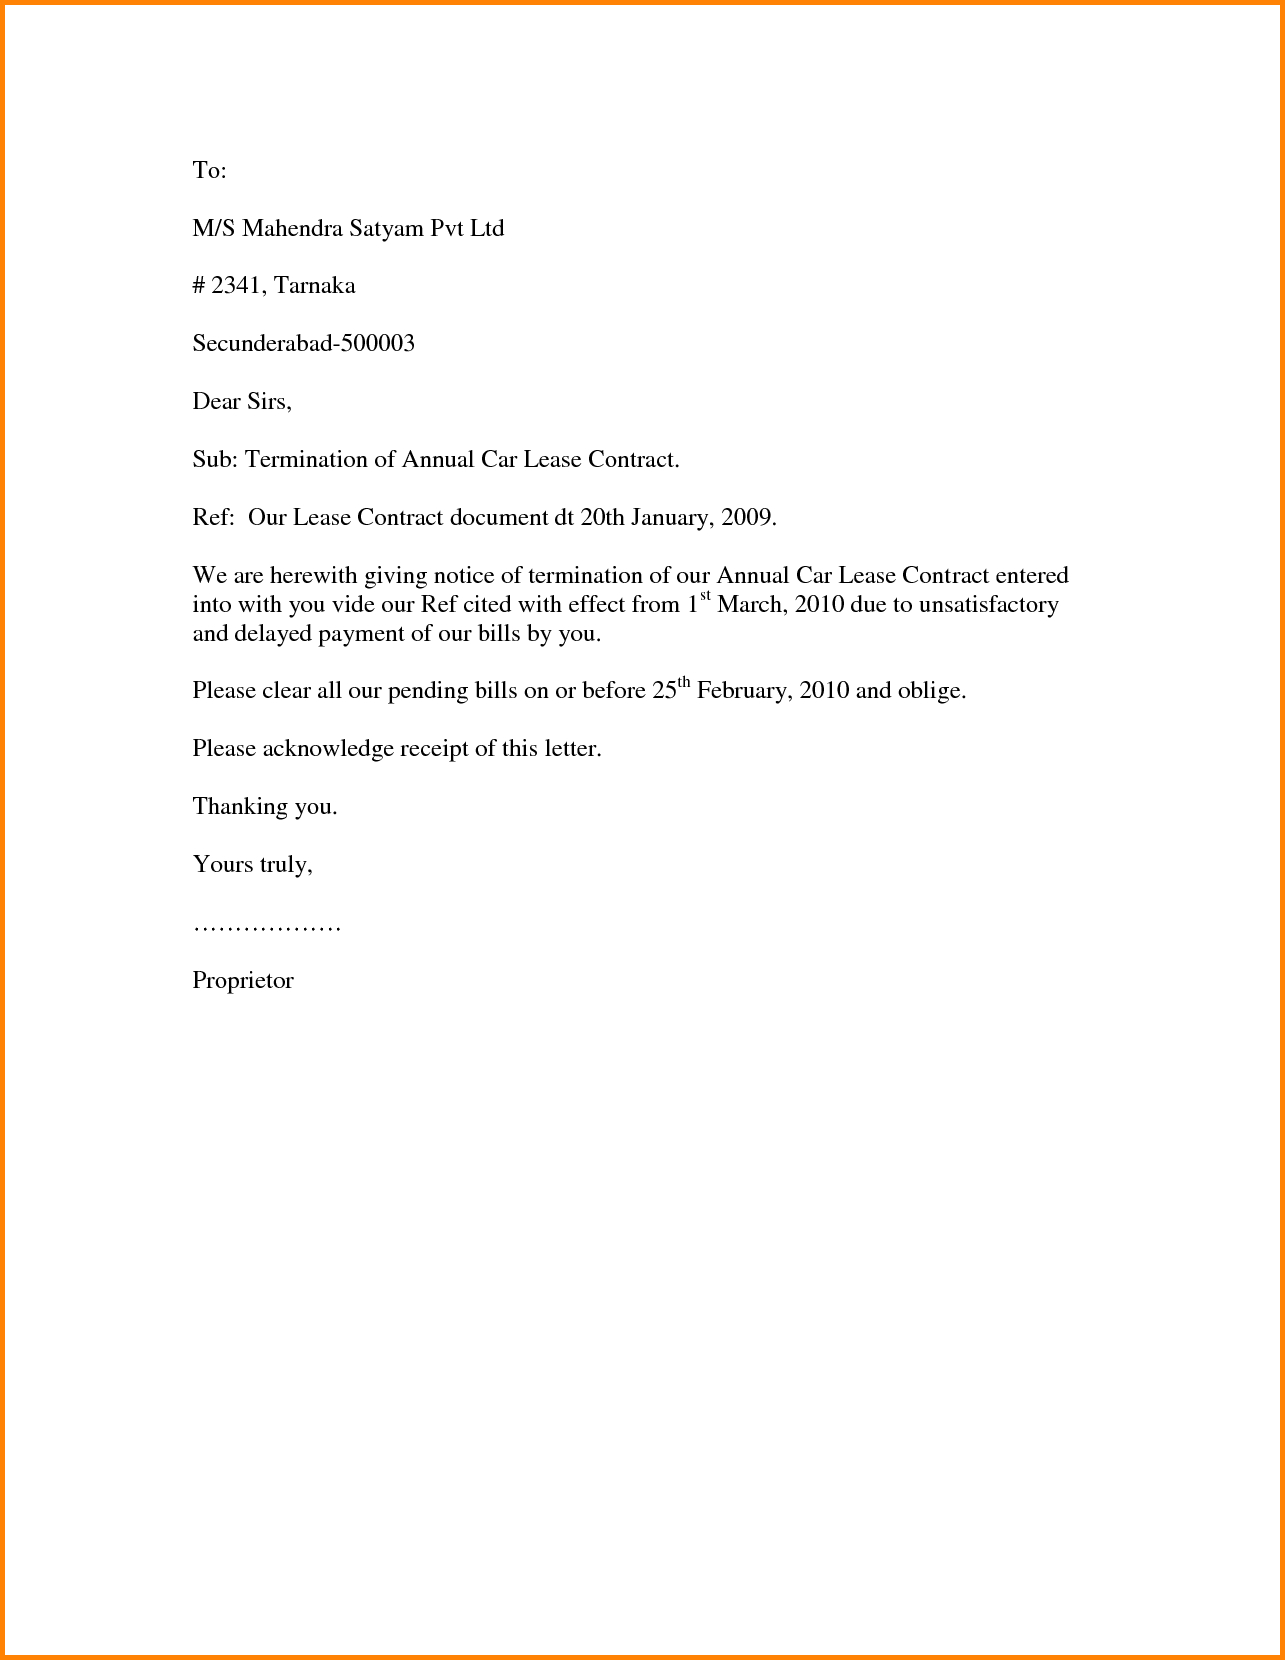 separation letter to employee template example-Letter Template To End A Contract Copy Contract Letter Work Sample 5-k